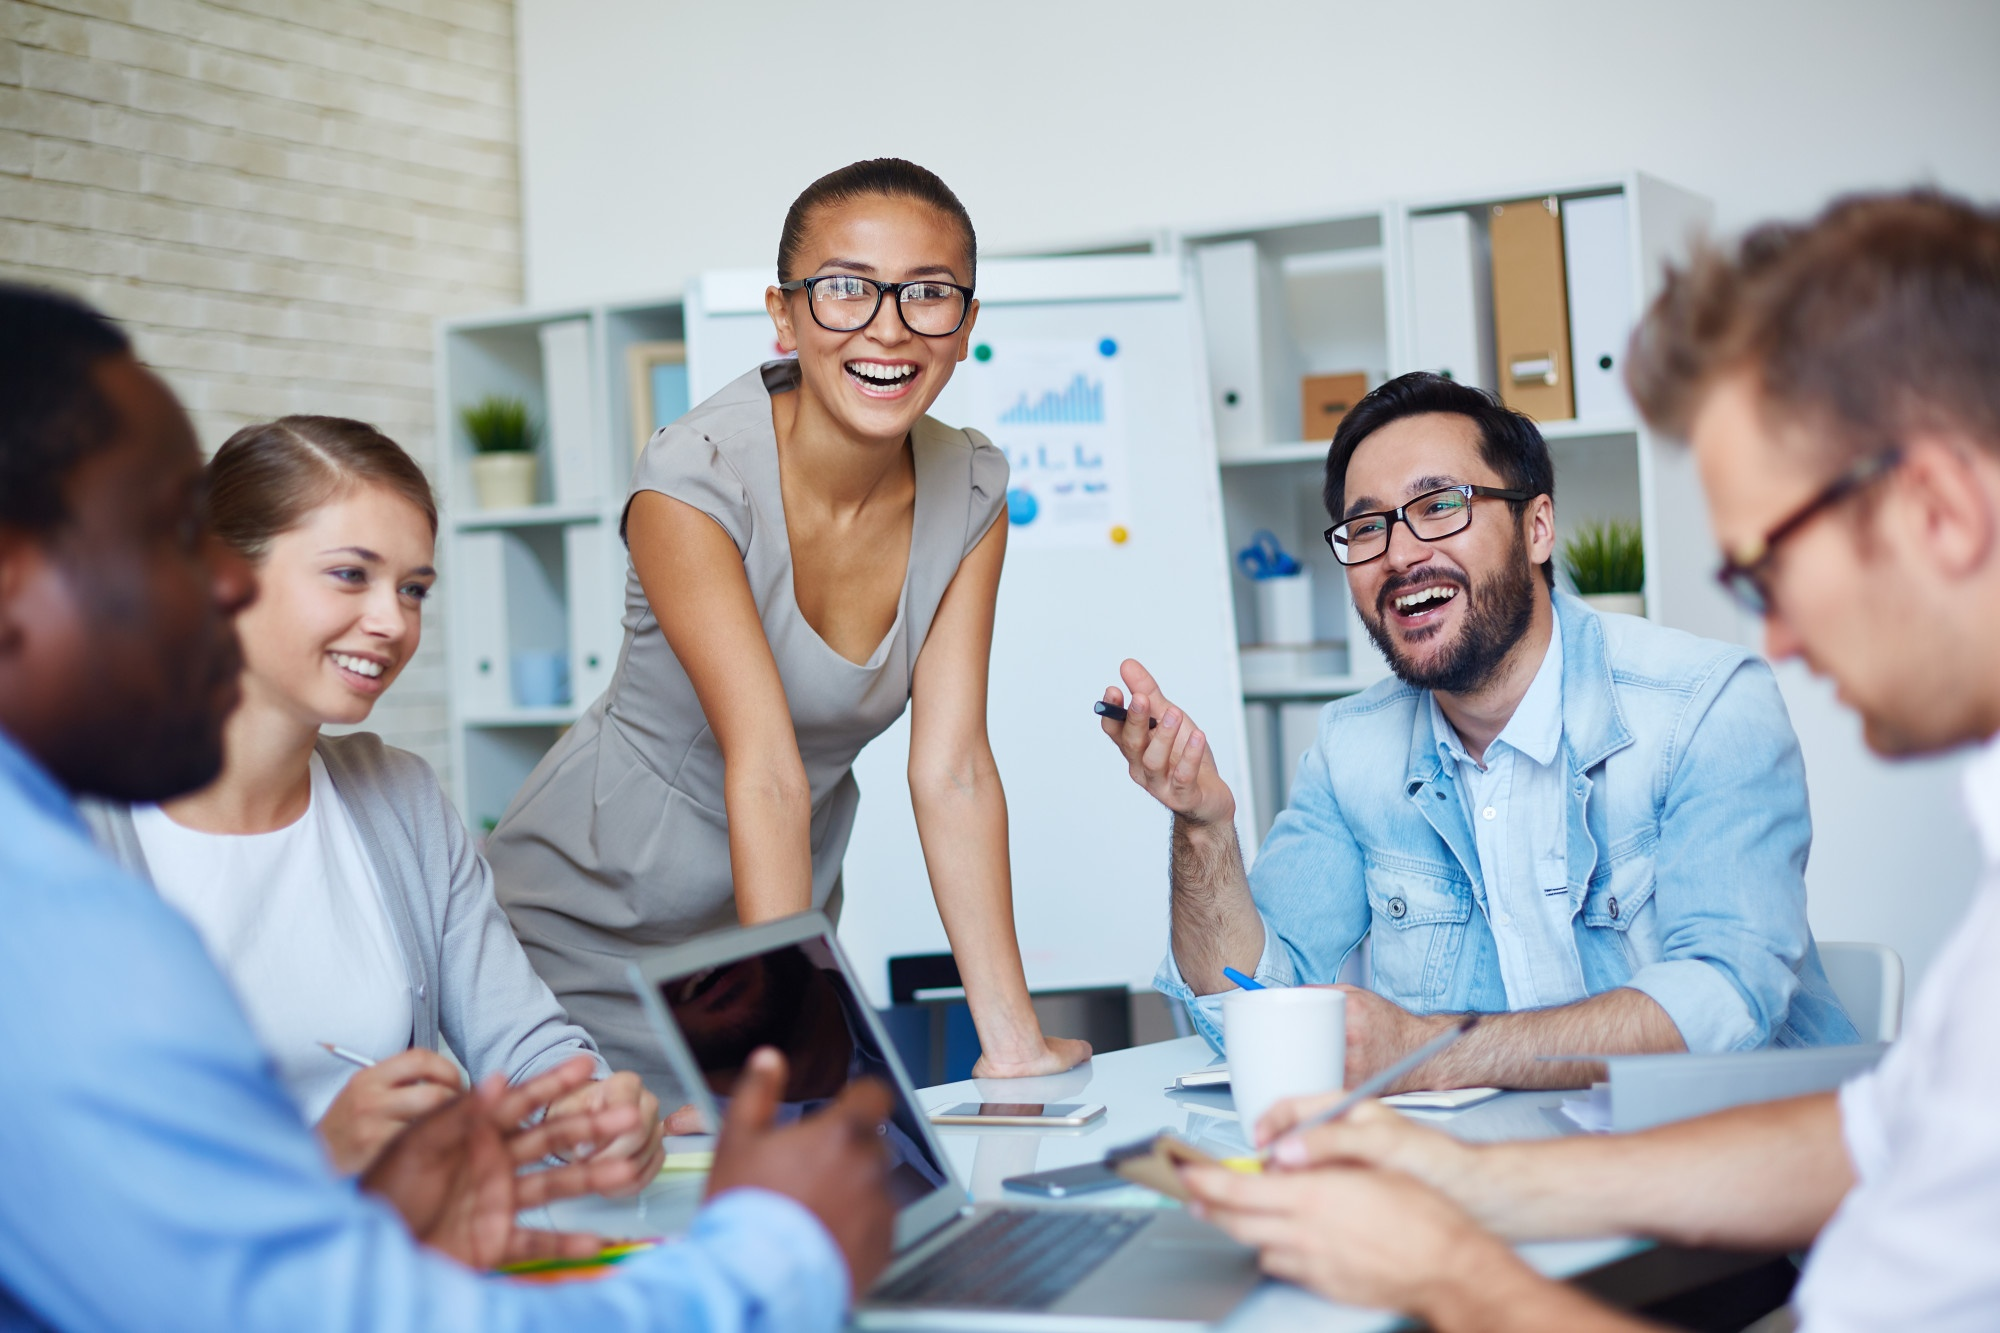 How to Improve Employee Morale and Make Work Fun Again